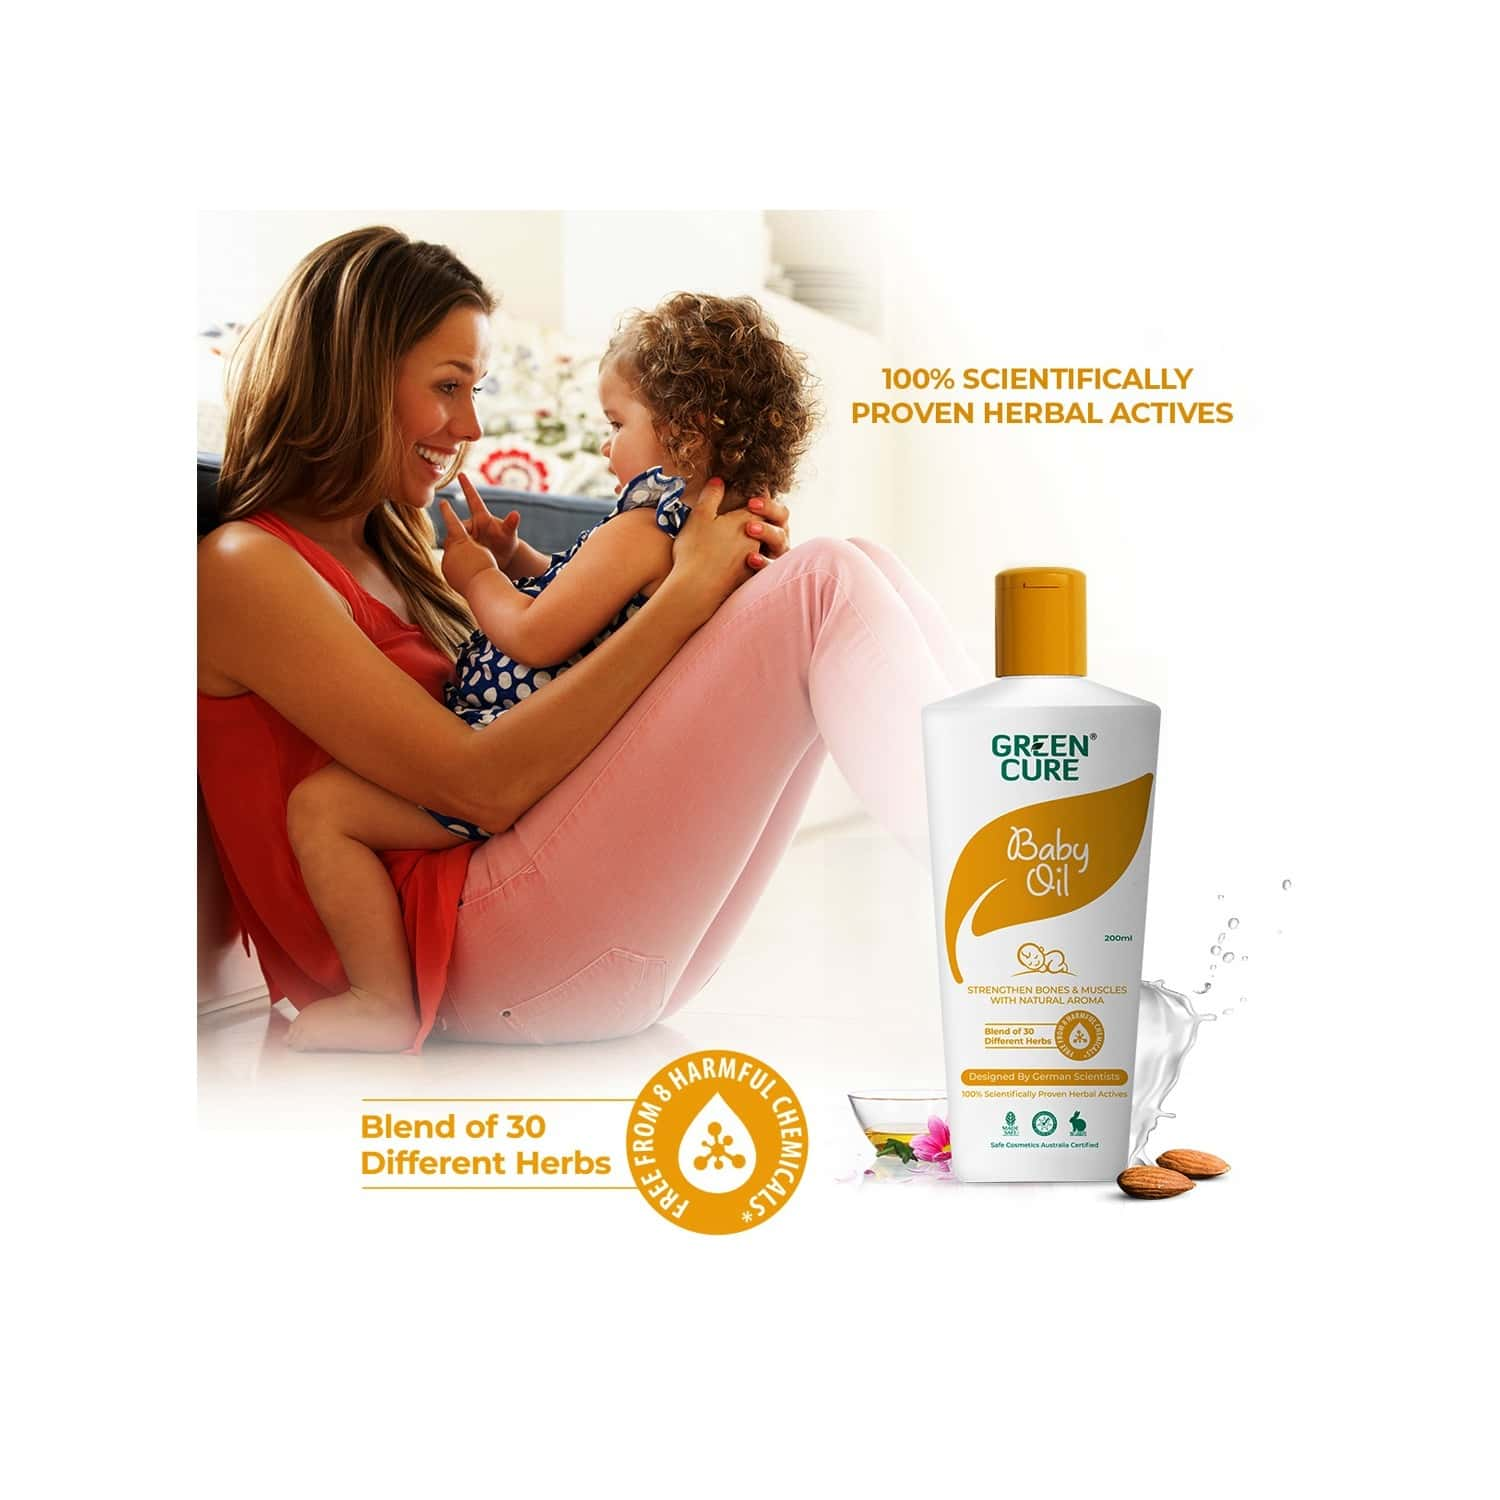 Green Cure Natural Baby Oil For Healthy Bones & Muscles, Enriched With Almond Oil, Squalan And 30 Natural Oils - 200ml